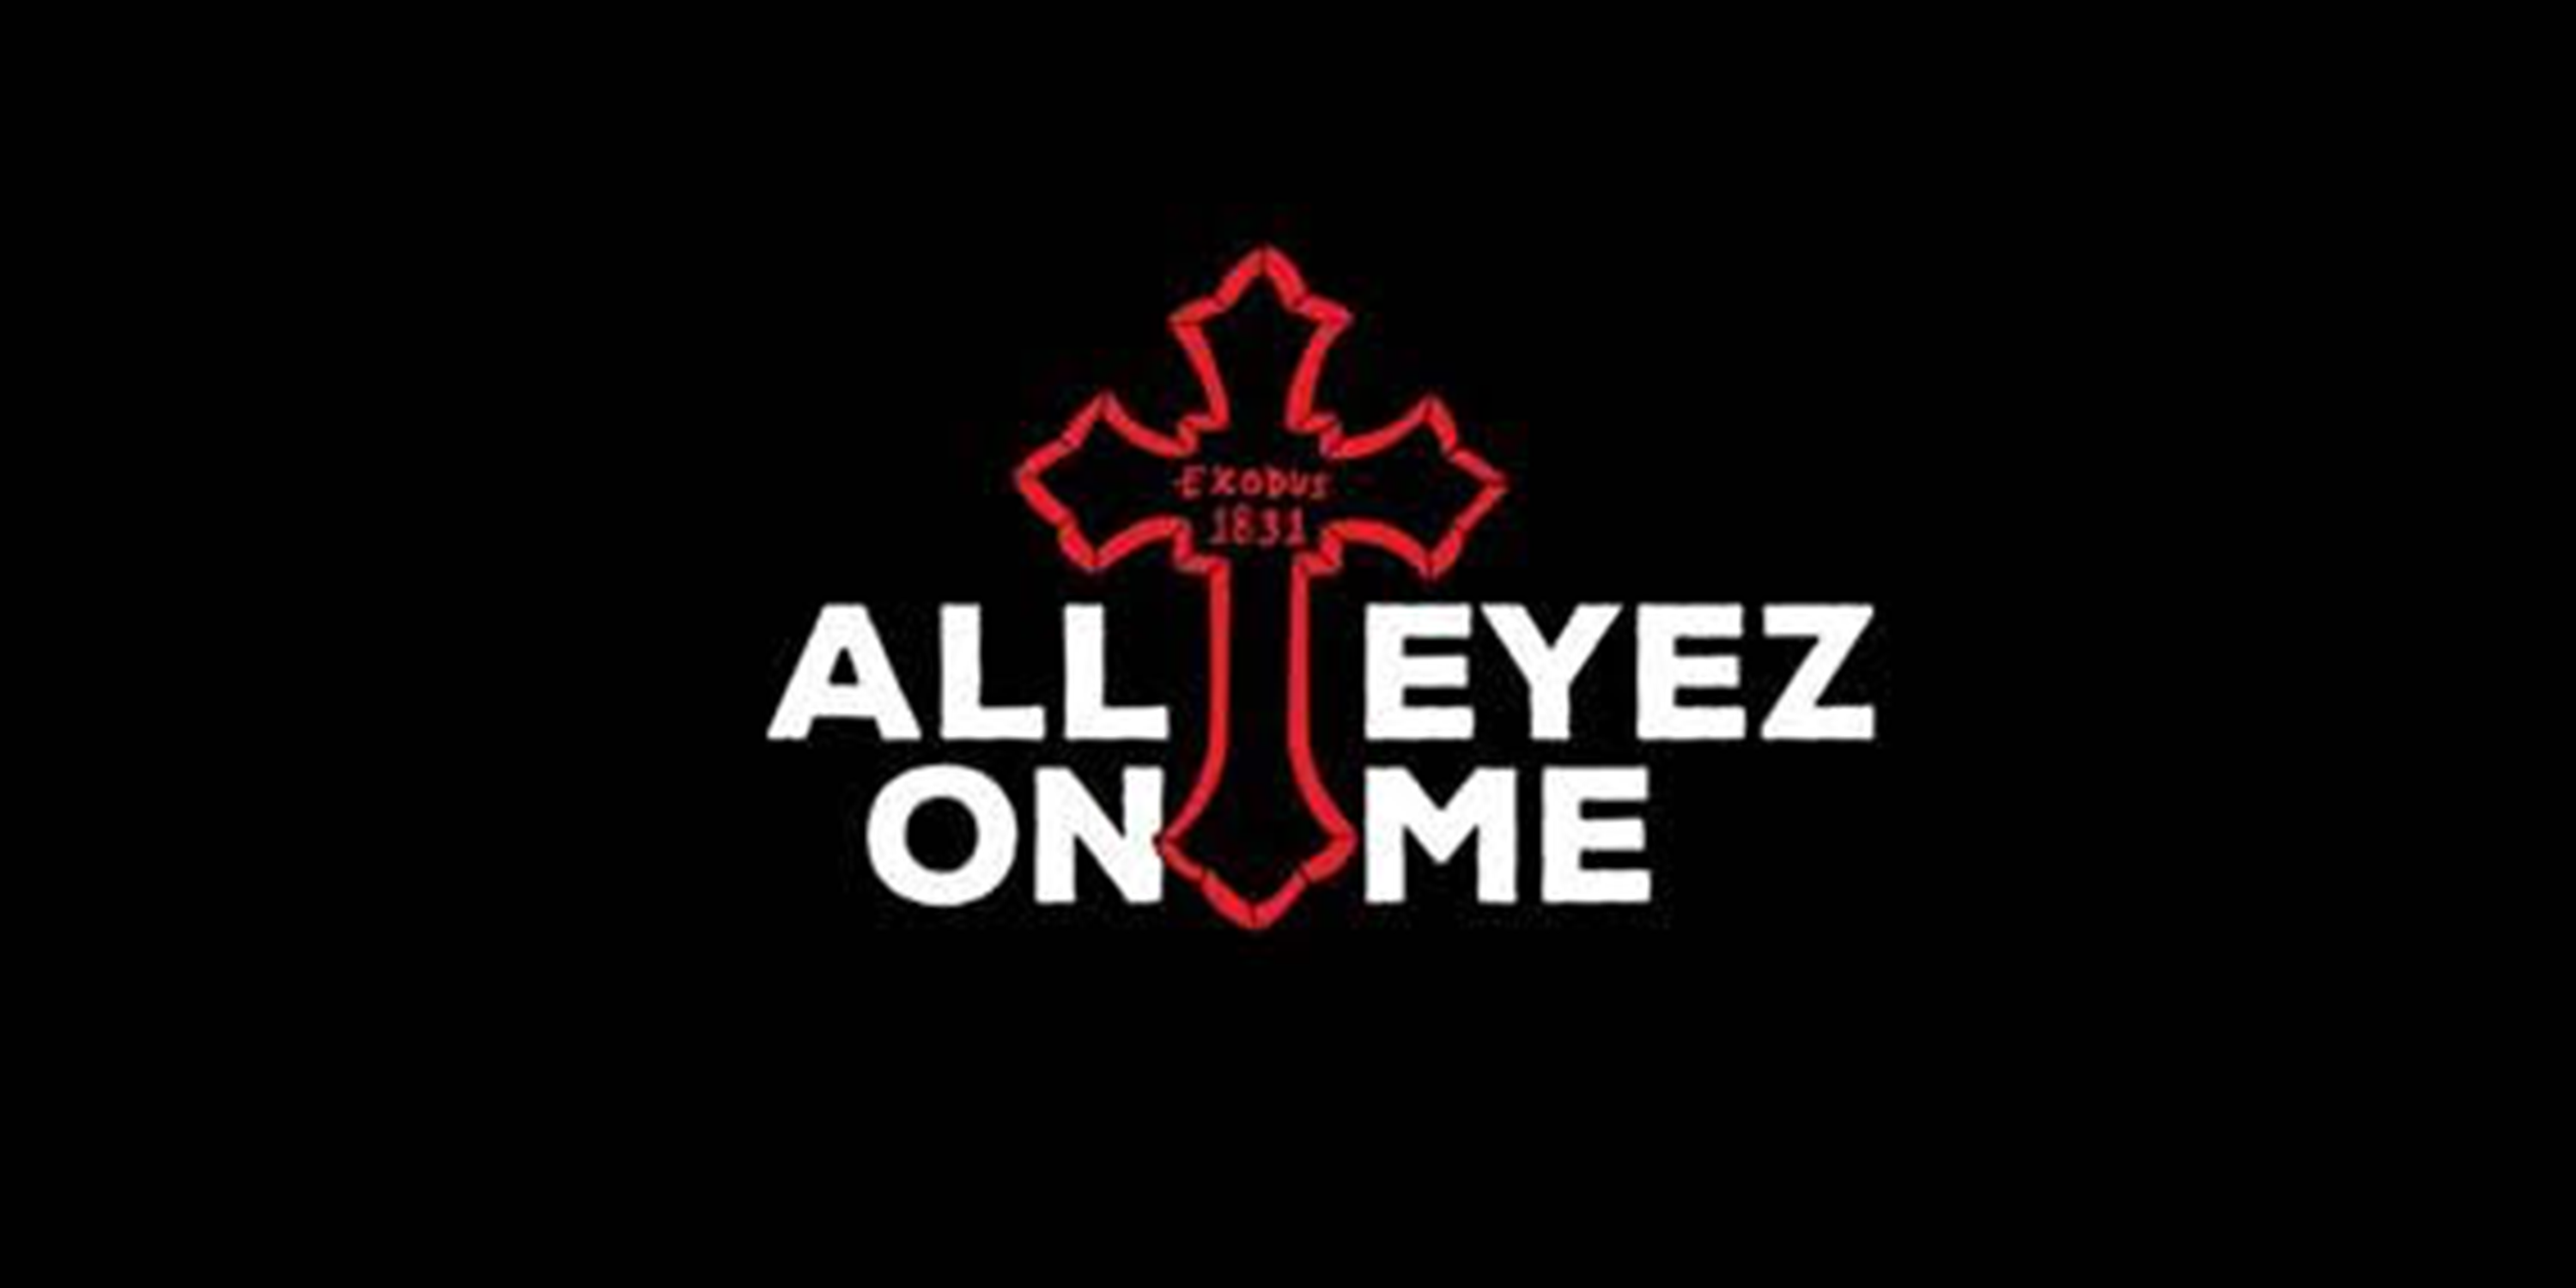 All Eyez On Me Png - NEWS: Tupac Shakar movie 'All Eyez On Me' is on the way ...